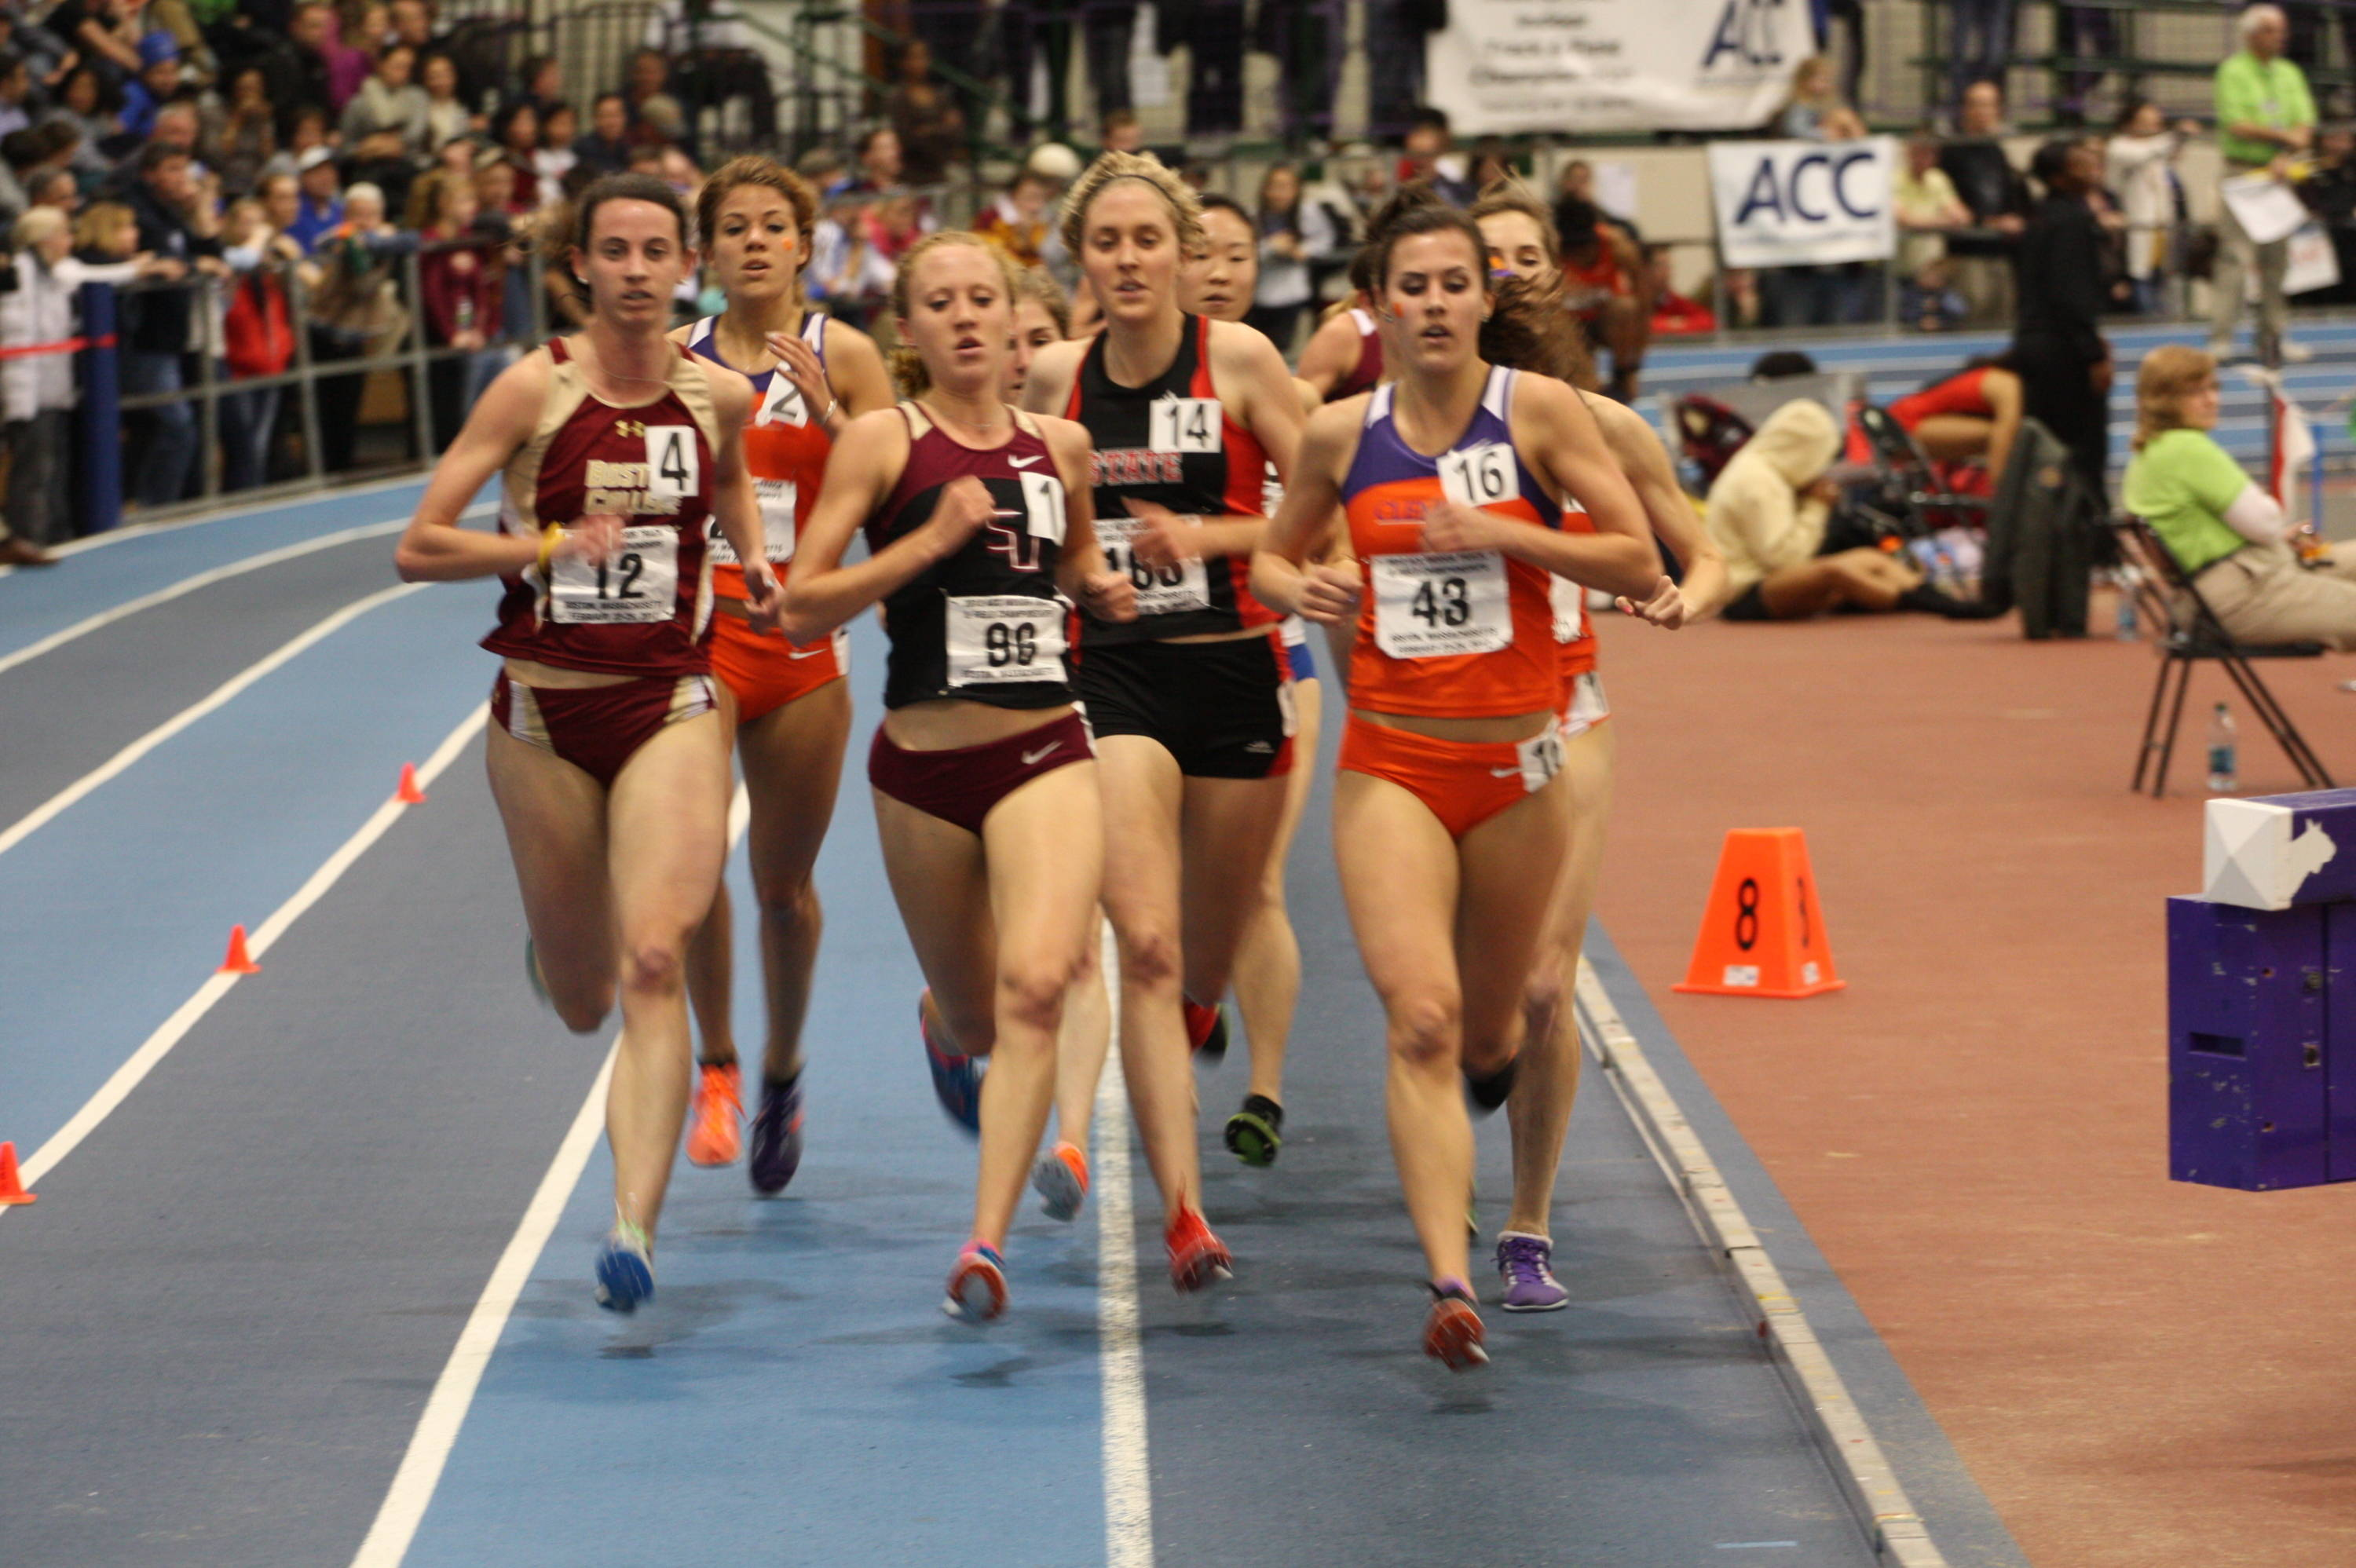 Amanda Winslow makes her move into the lead en route to victory in the 3000m; the lone individual gold on the final day for the FSU women.